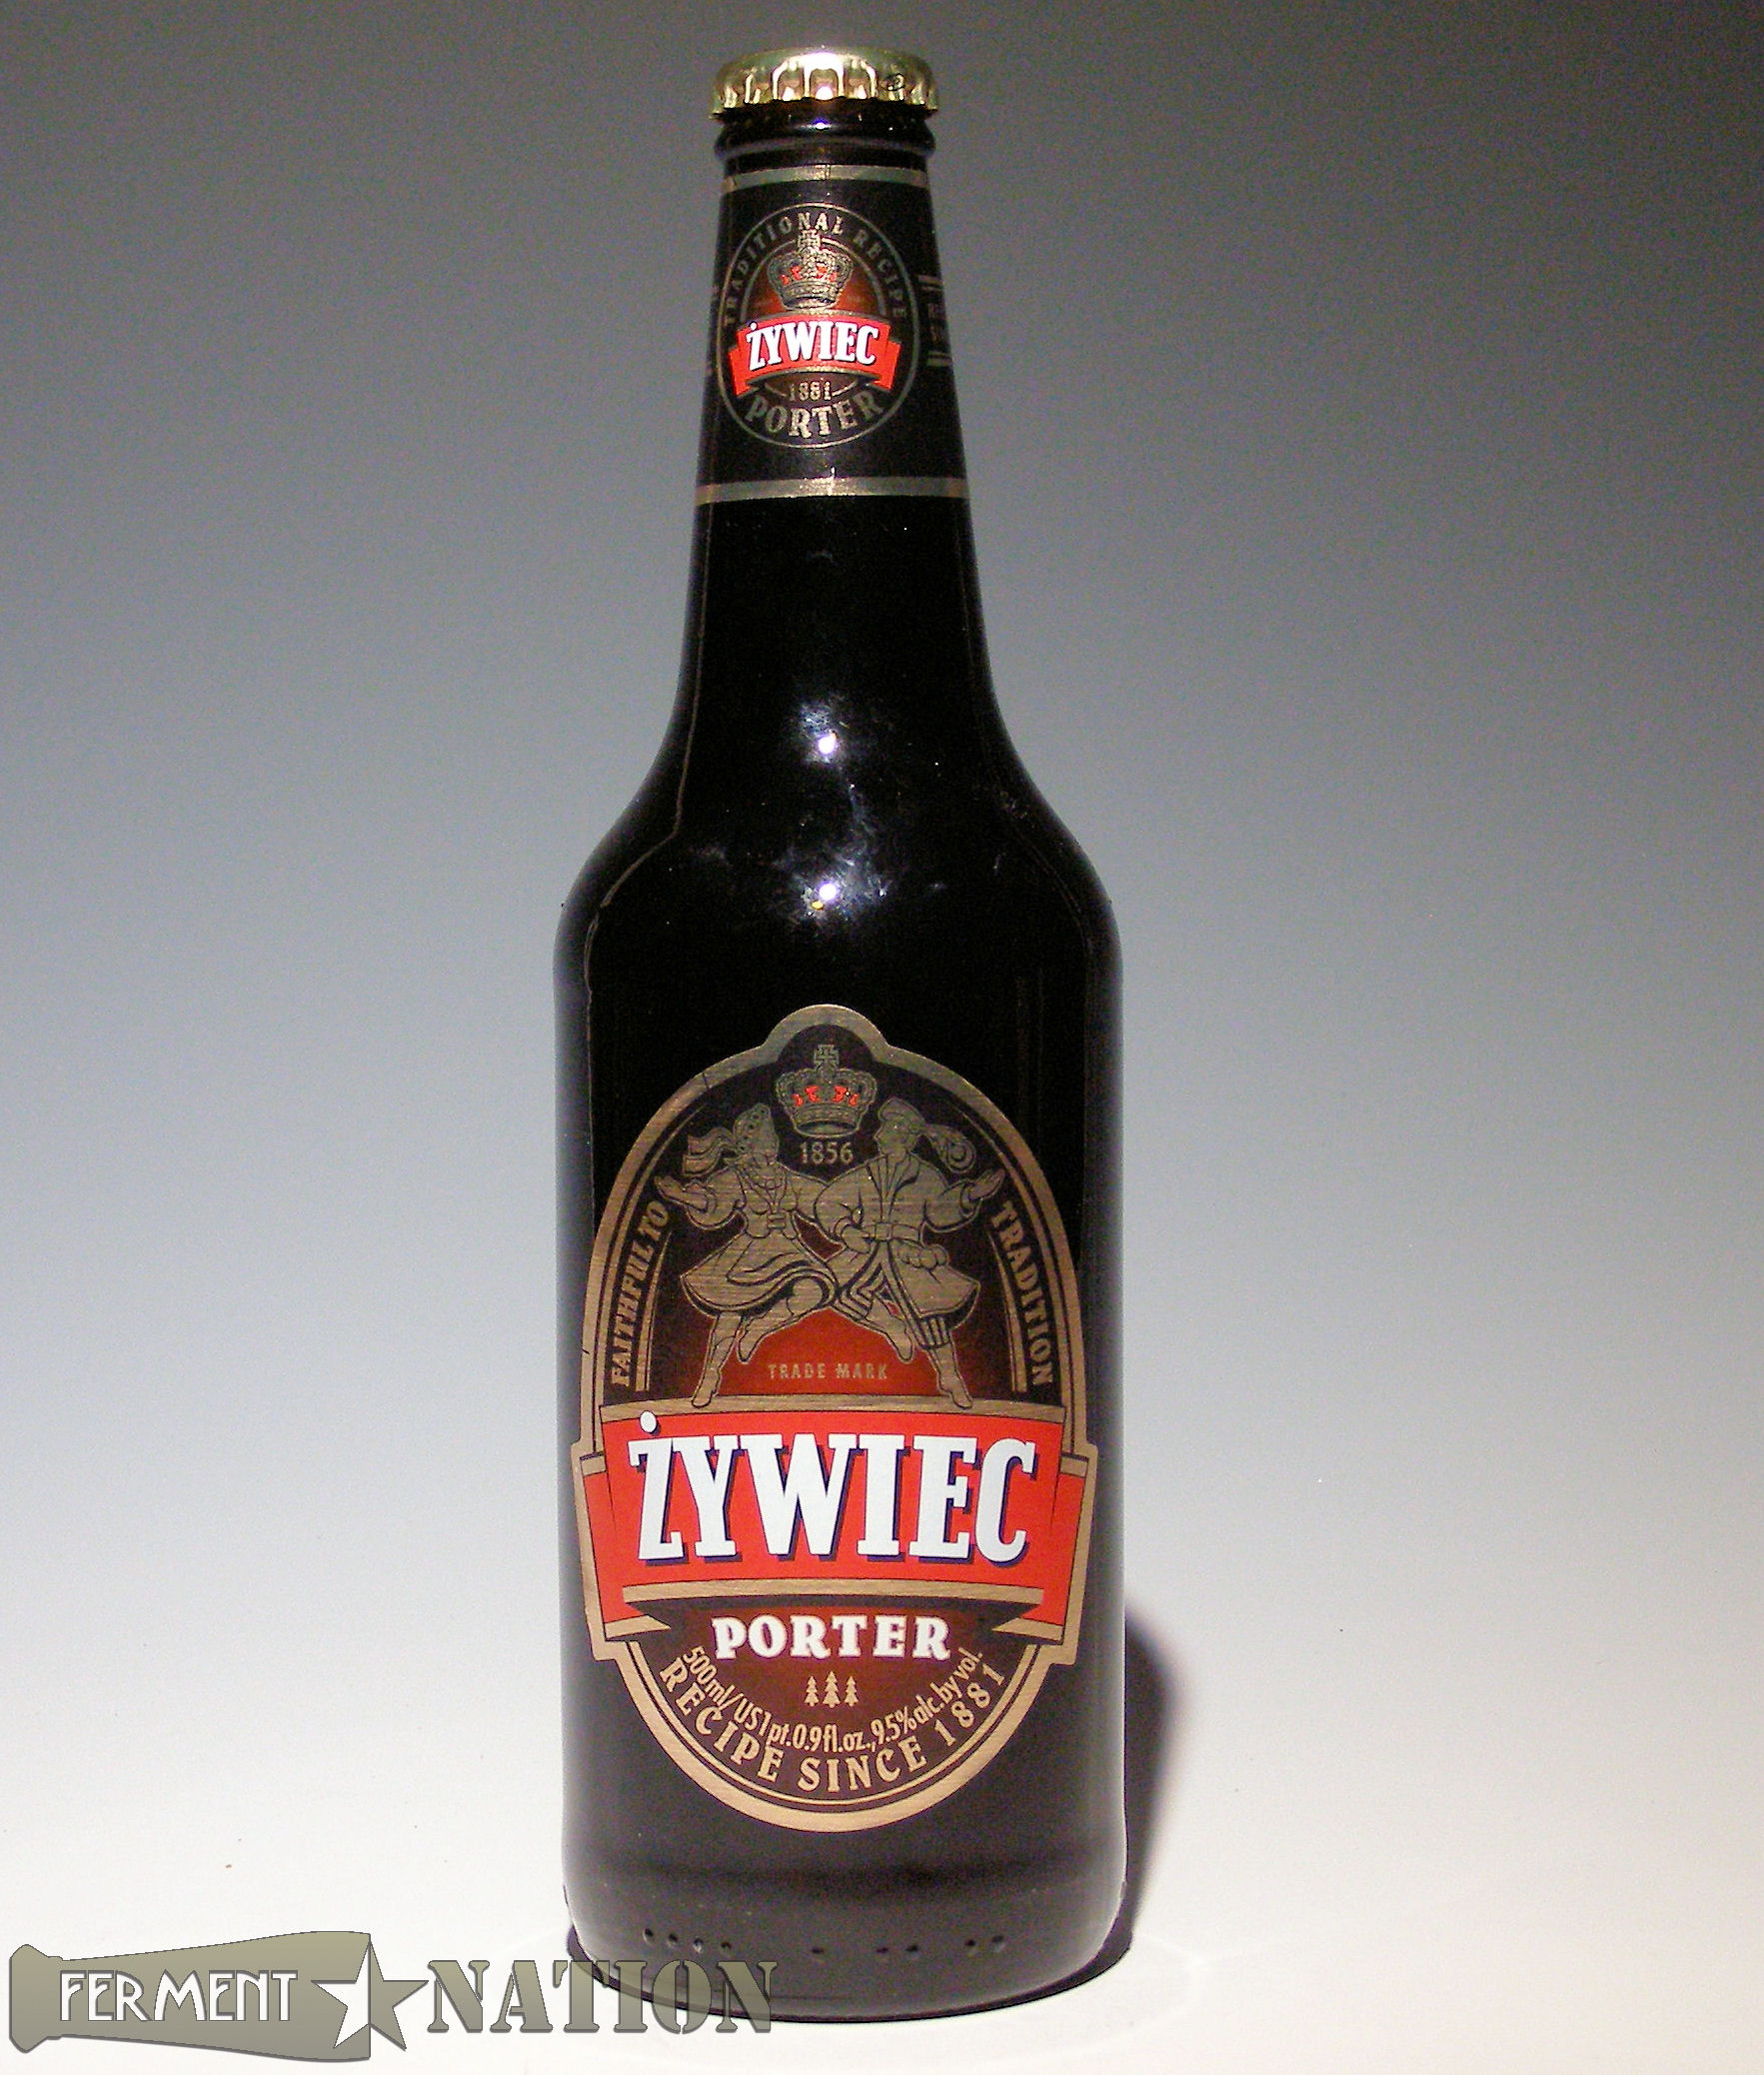 zywiec_porter_bottle_big.jpg